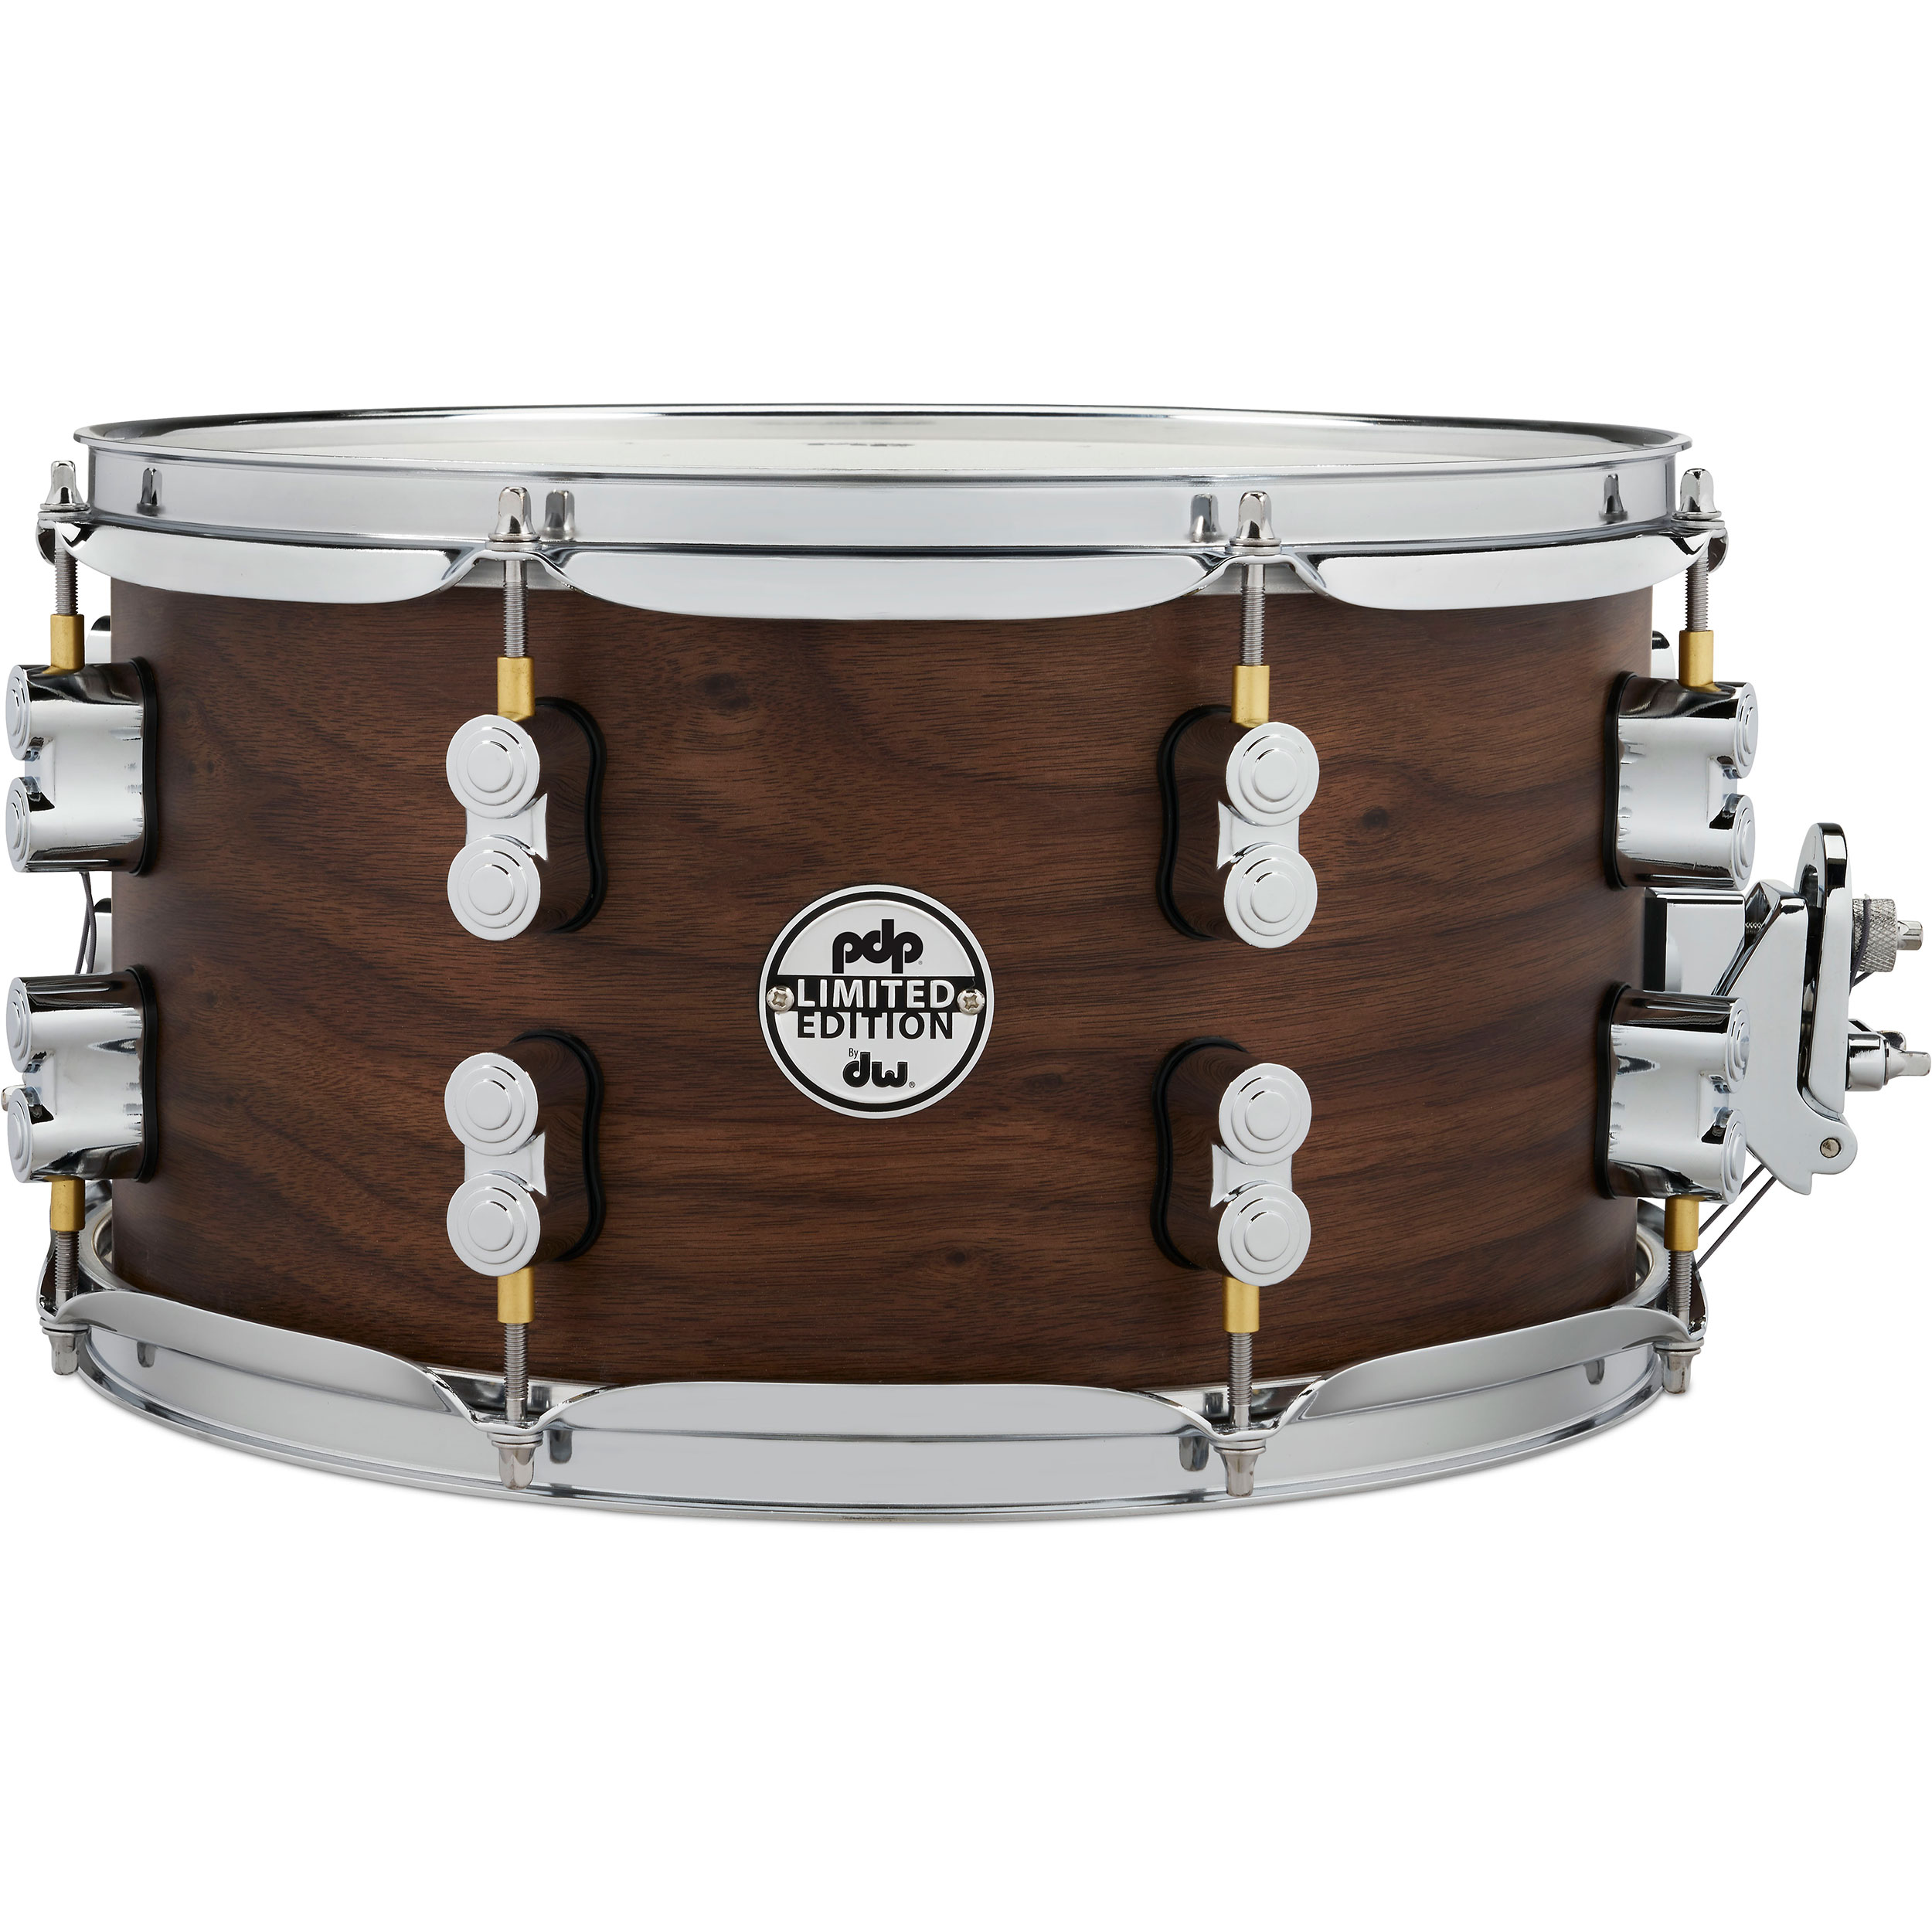 "PDP 7"" x 13"" Limited Edition Series 20-Ply Maple/Walnut Snare Drum in Natural Satin"